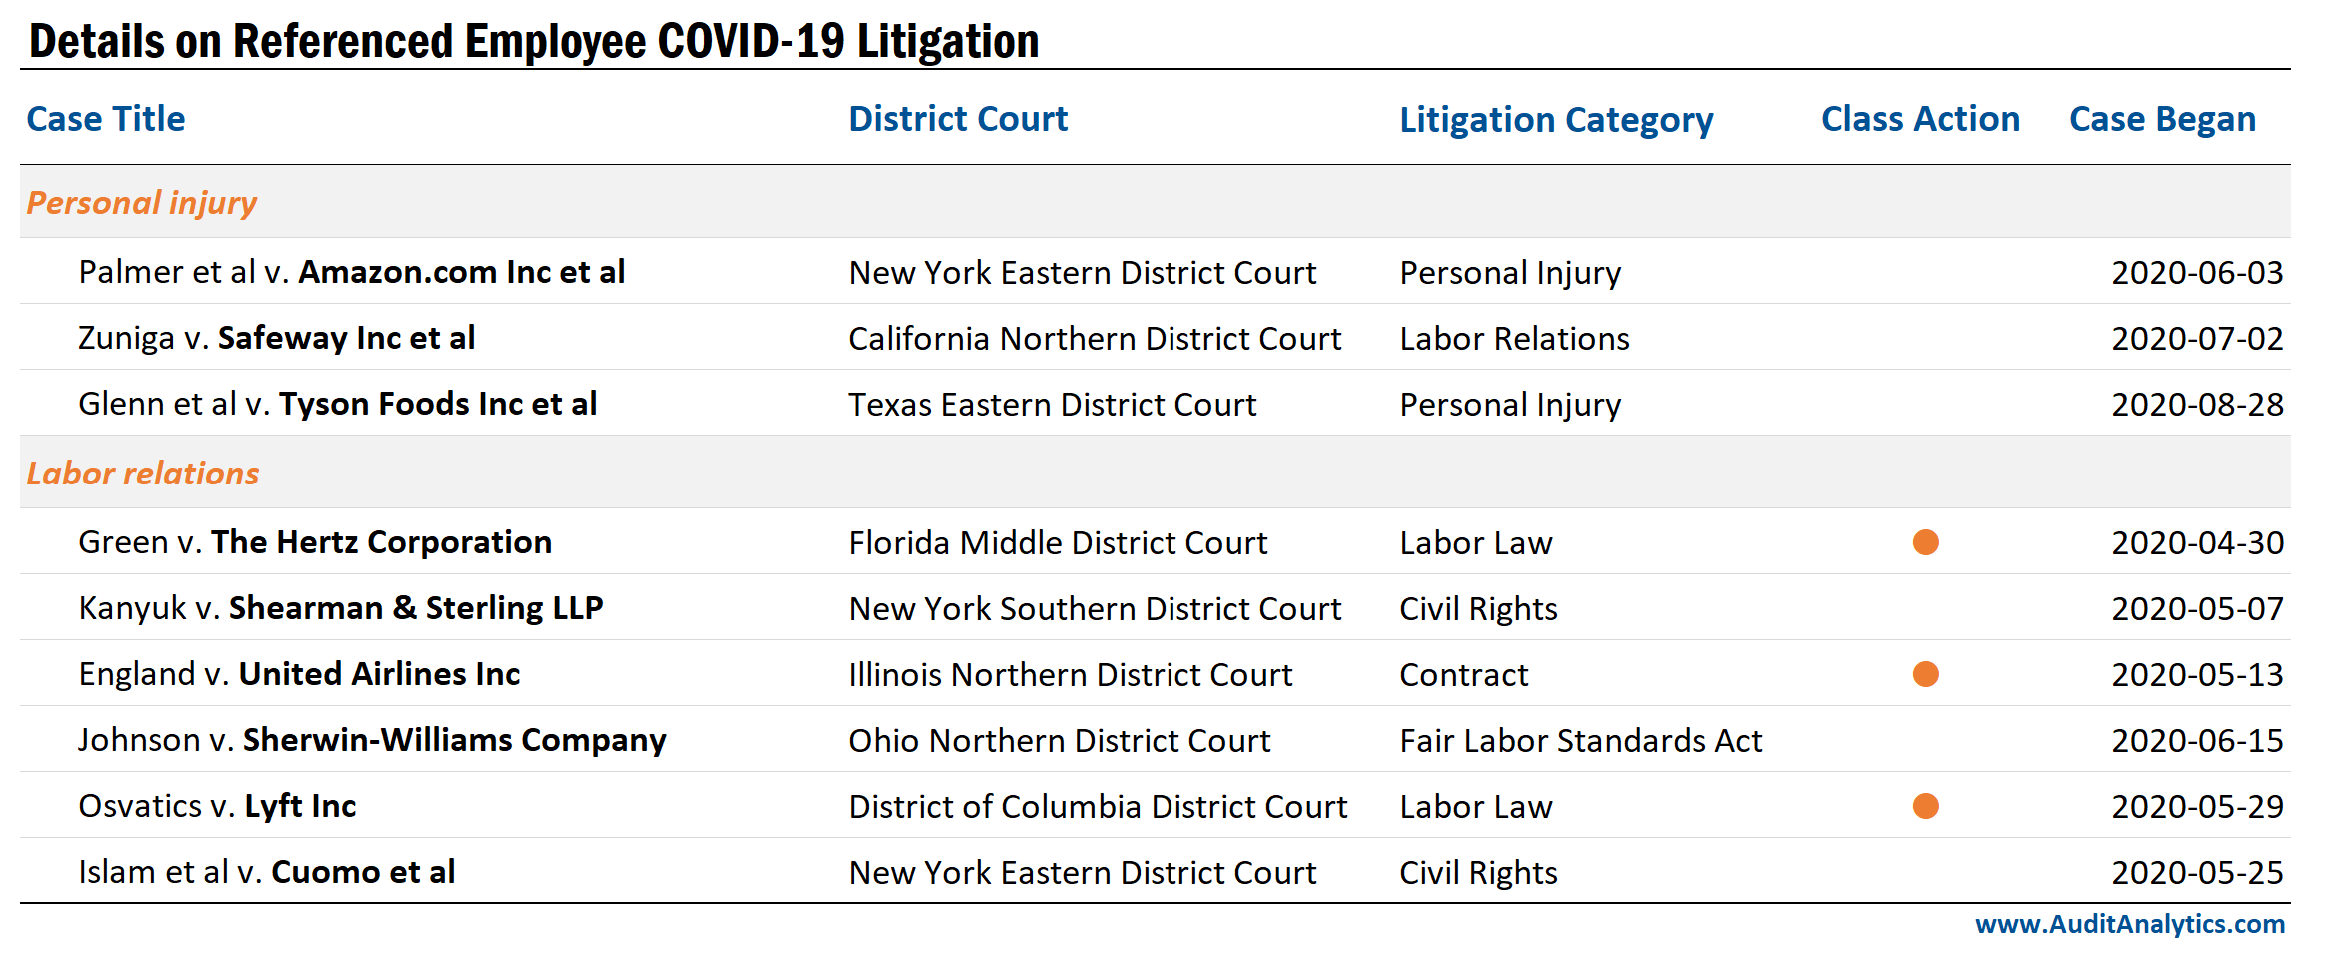 COVID-19 litigation filed by employees